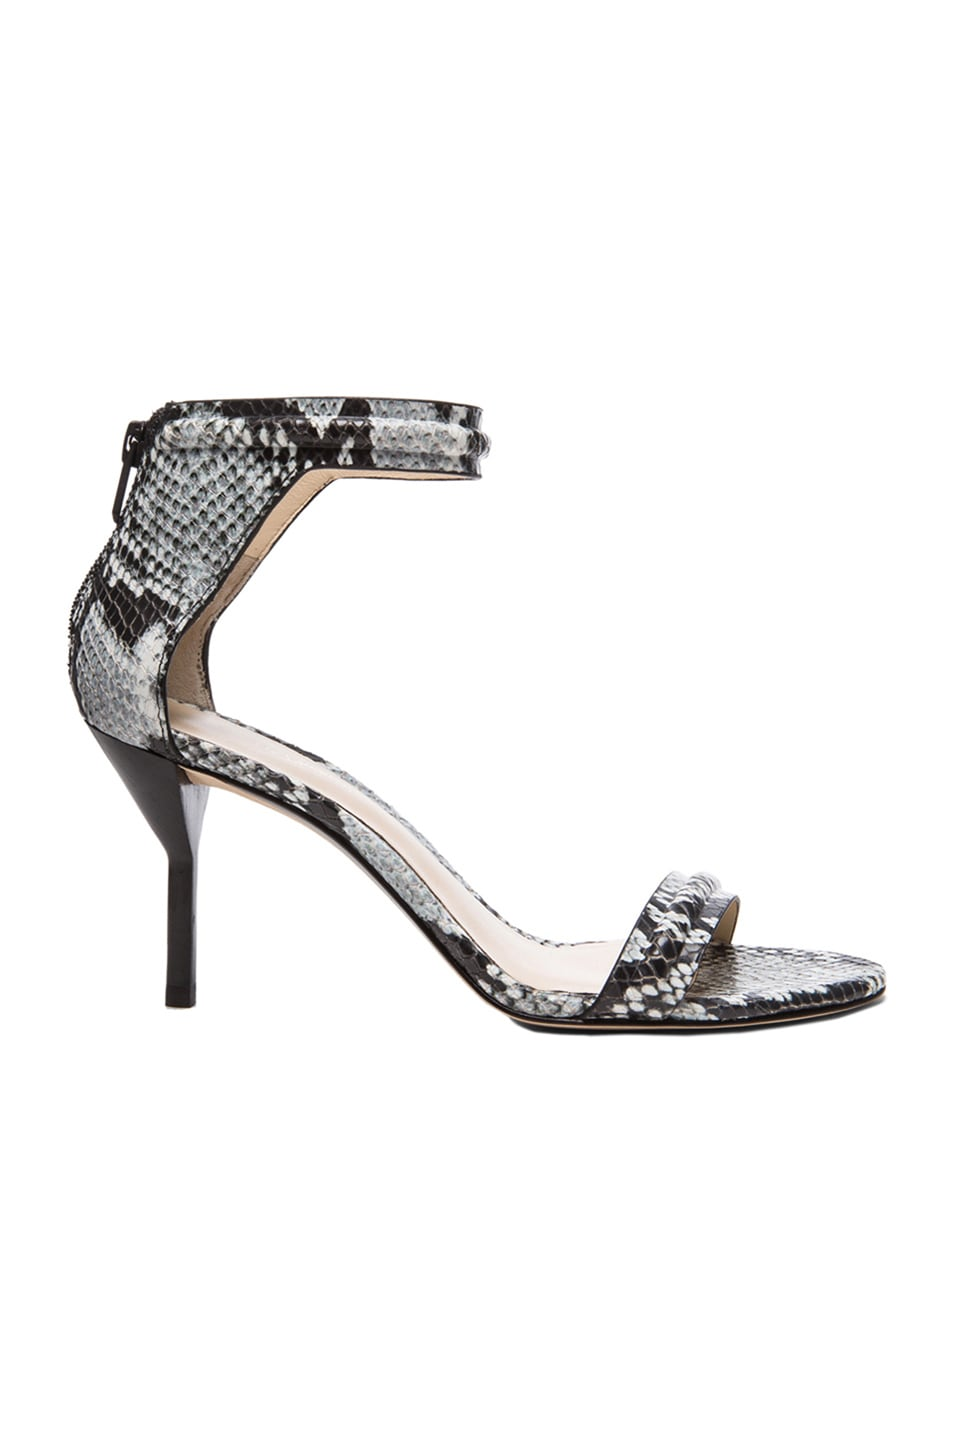 0e2f43c08de6 Image 1 of 3.1 phillip lim Martini Python Print Mid Heel Leather Sandals in  Off White